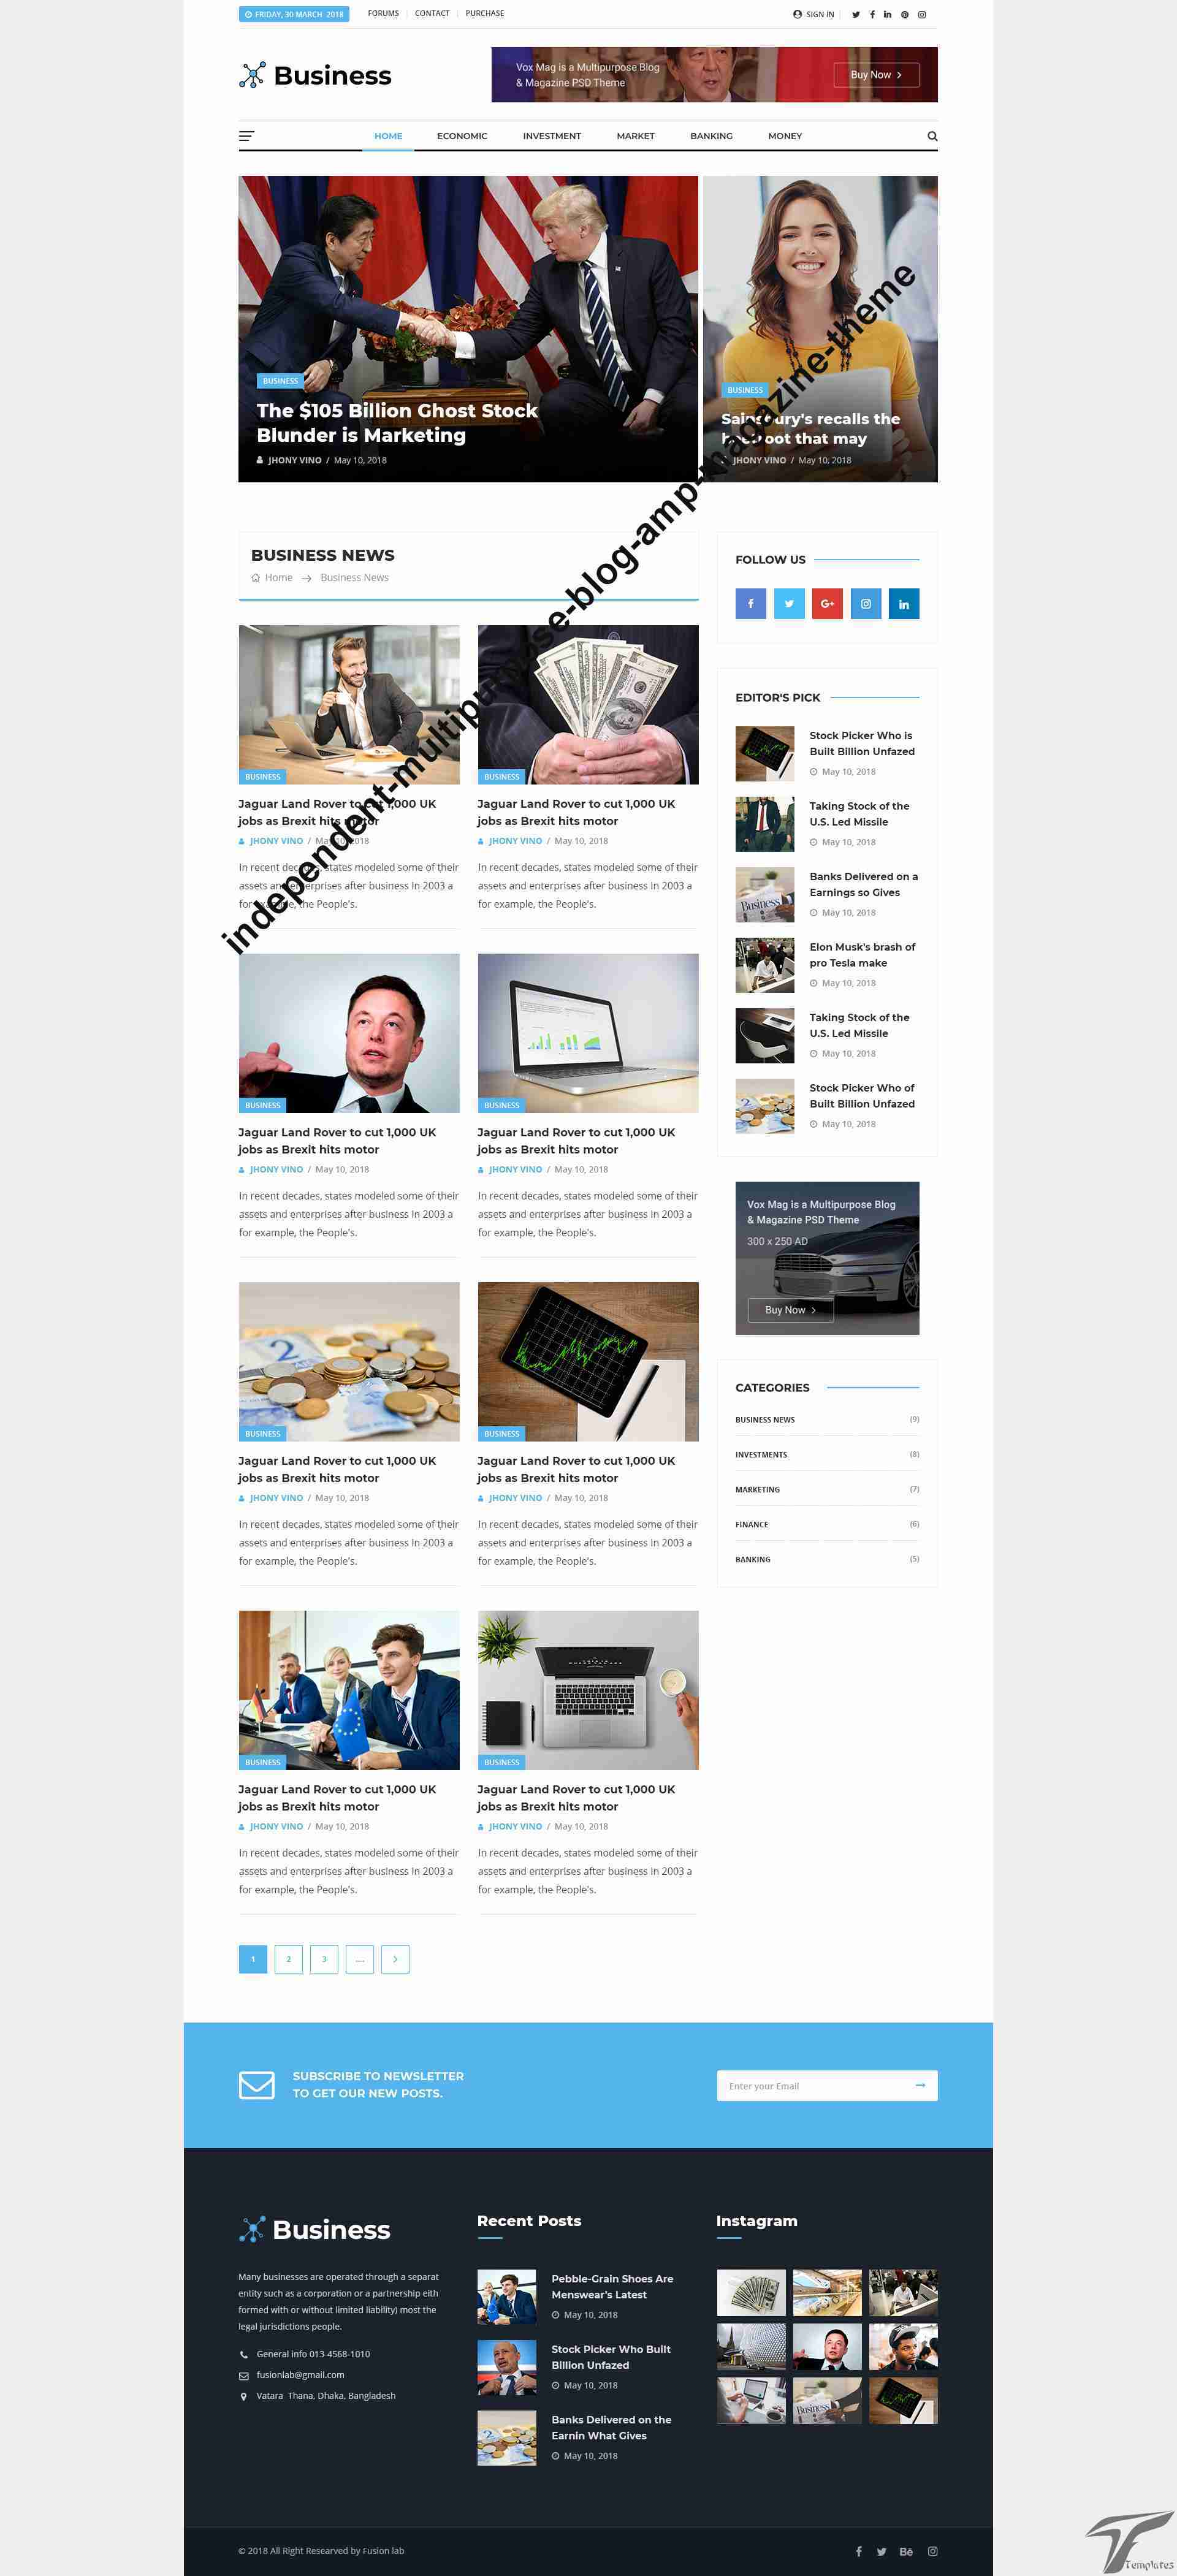 https://images.besthemes.com/images/h1_independent-multipurpose-blog-amp-magazine-theme44-_-249989416/Theme-s20s-Preview/43-Listing-s20s-Blog.jpg